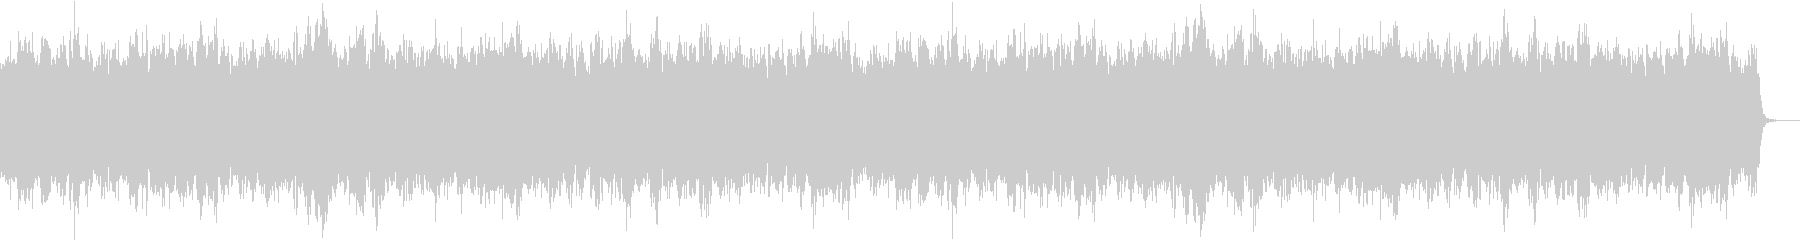 BGM with a soft tone (guitar)'s unreproduced waveform